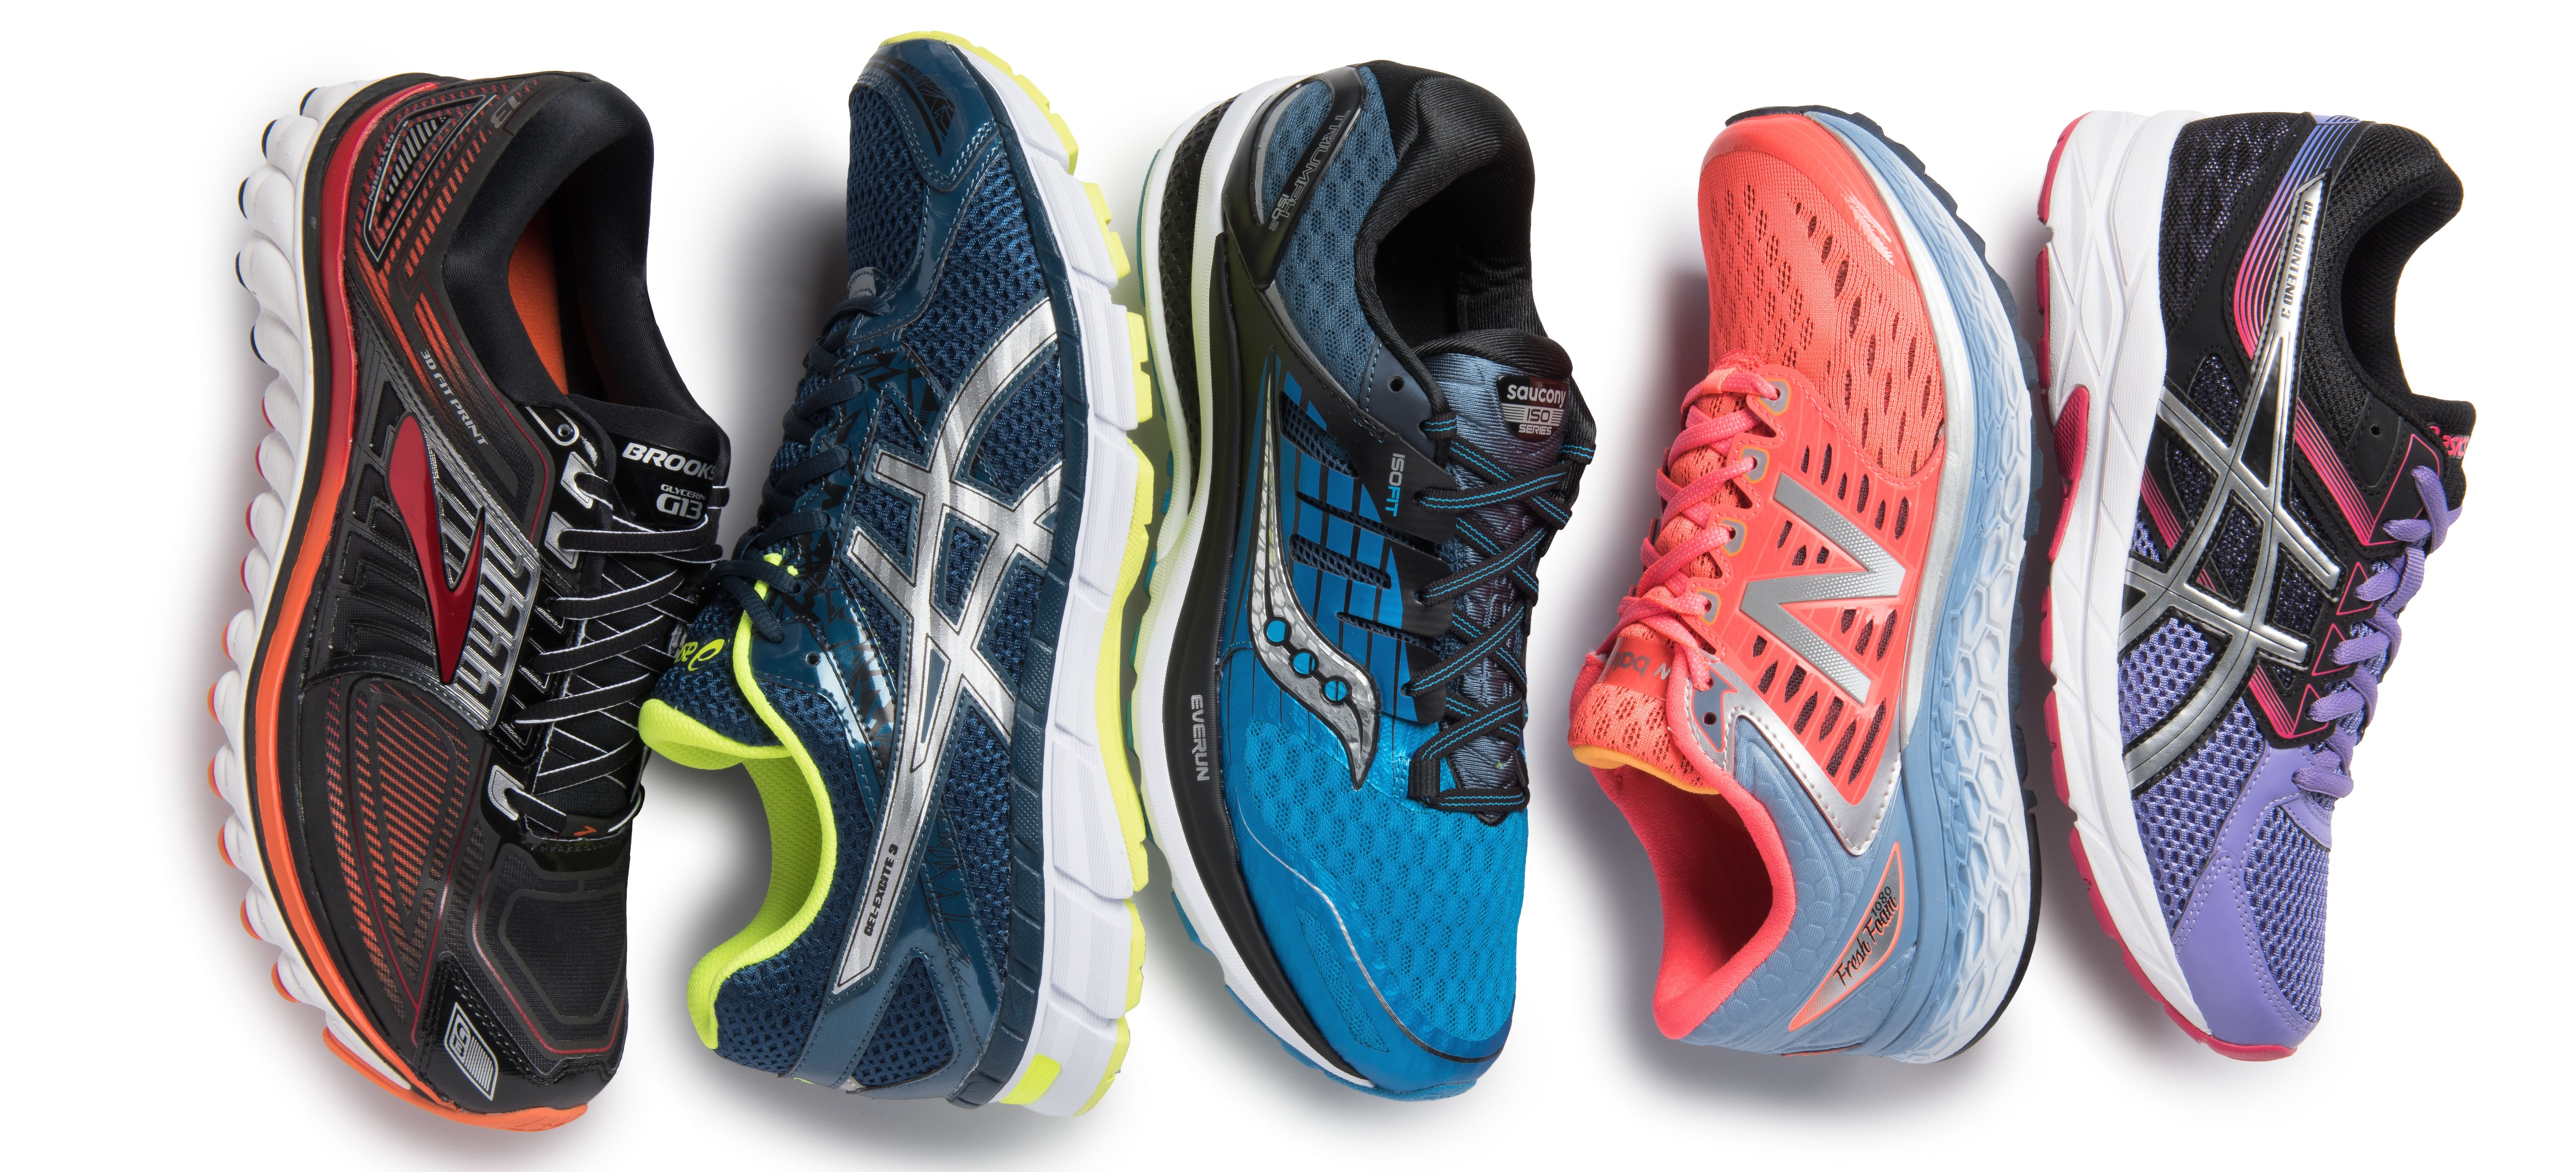 How to Choose Training Shoes | Sierra Trading Post Blog